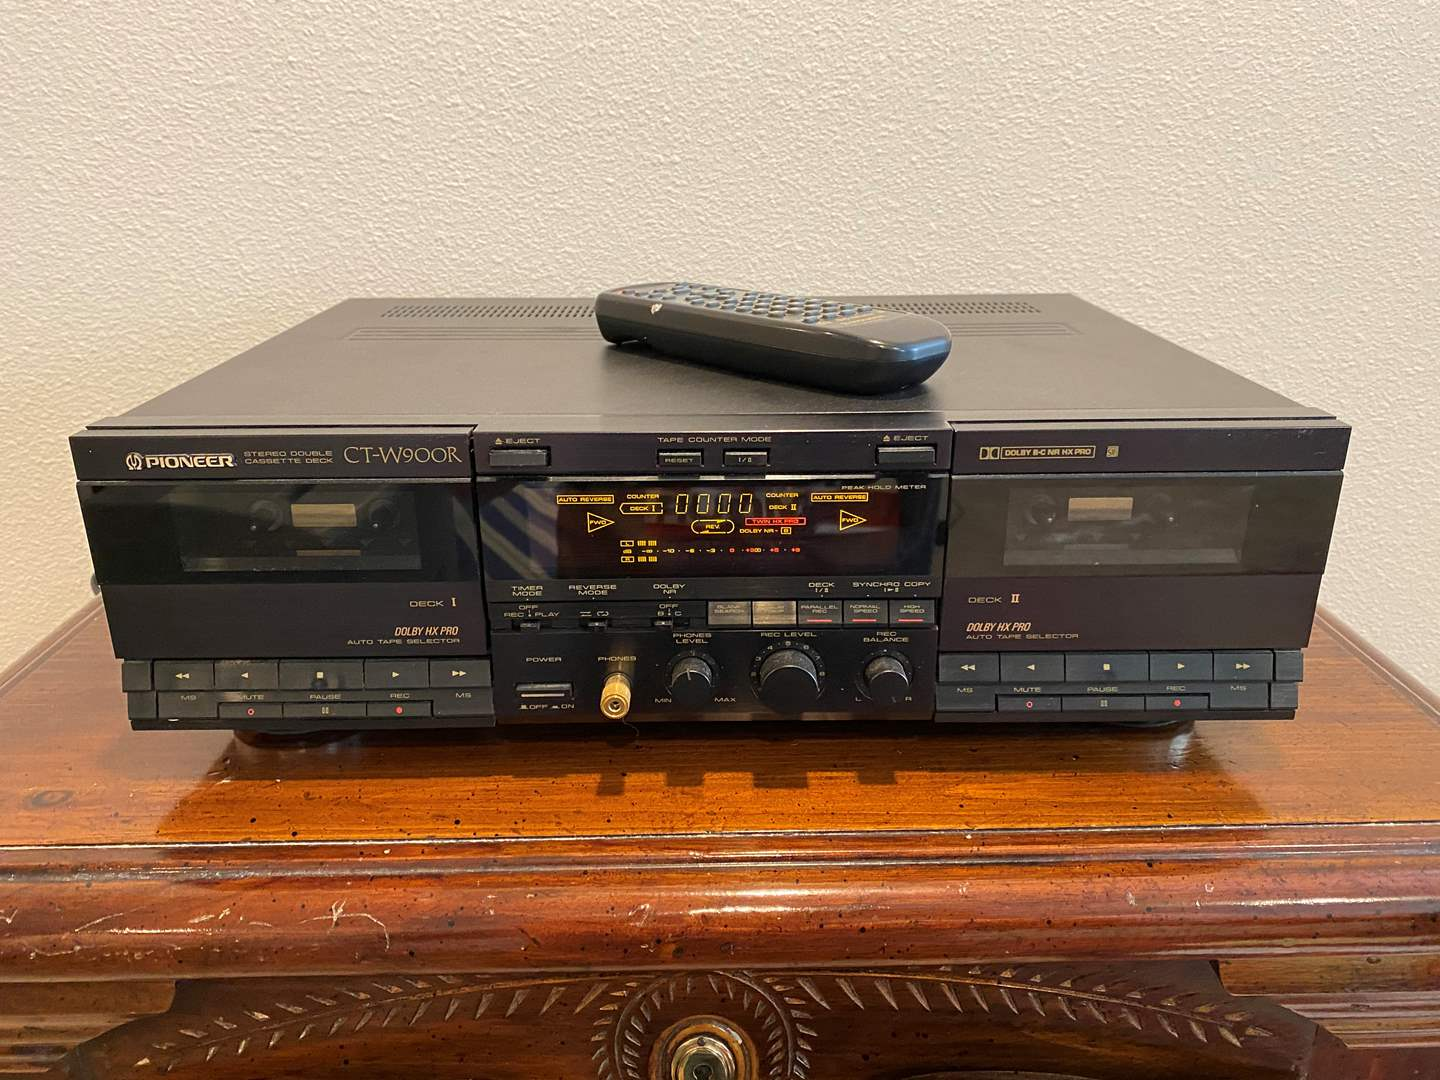 Lot # 268 - Pioneer CT-W900R Double Cassette Deck - Powers On (main image)